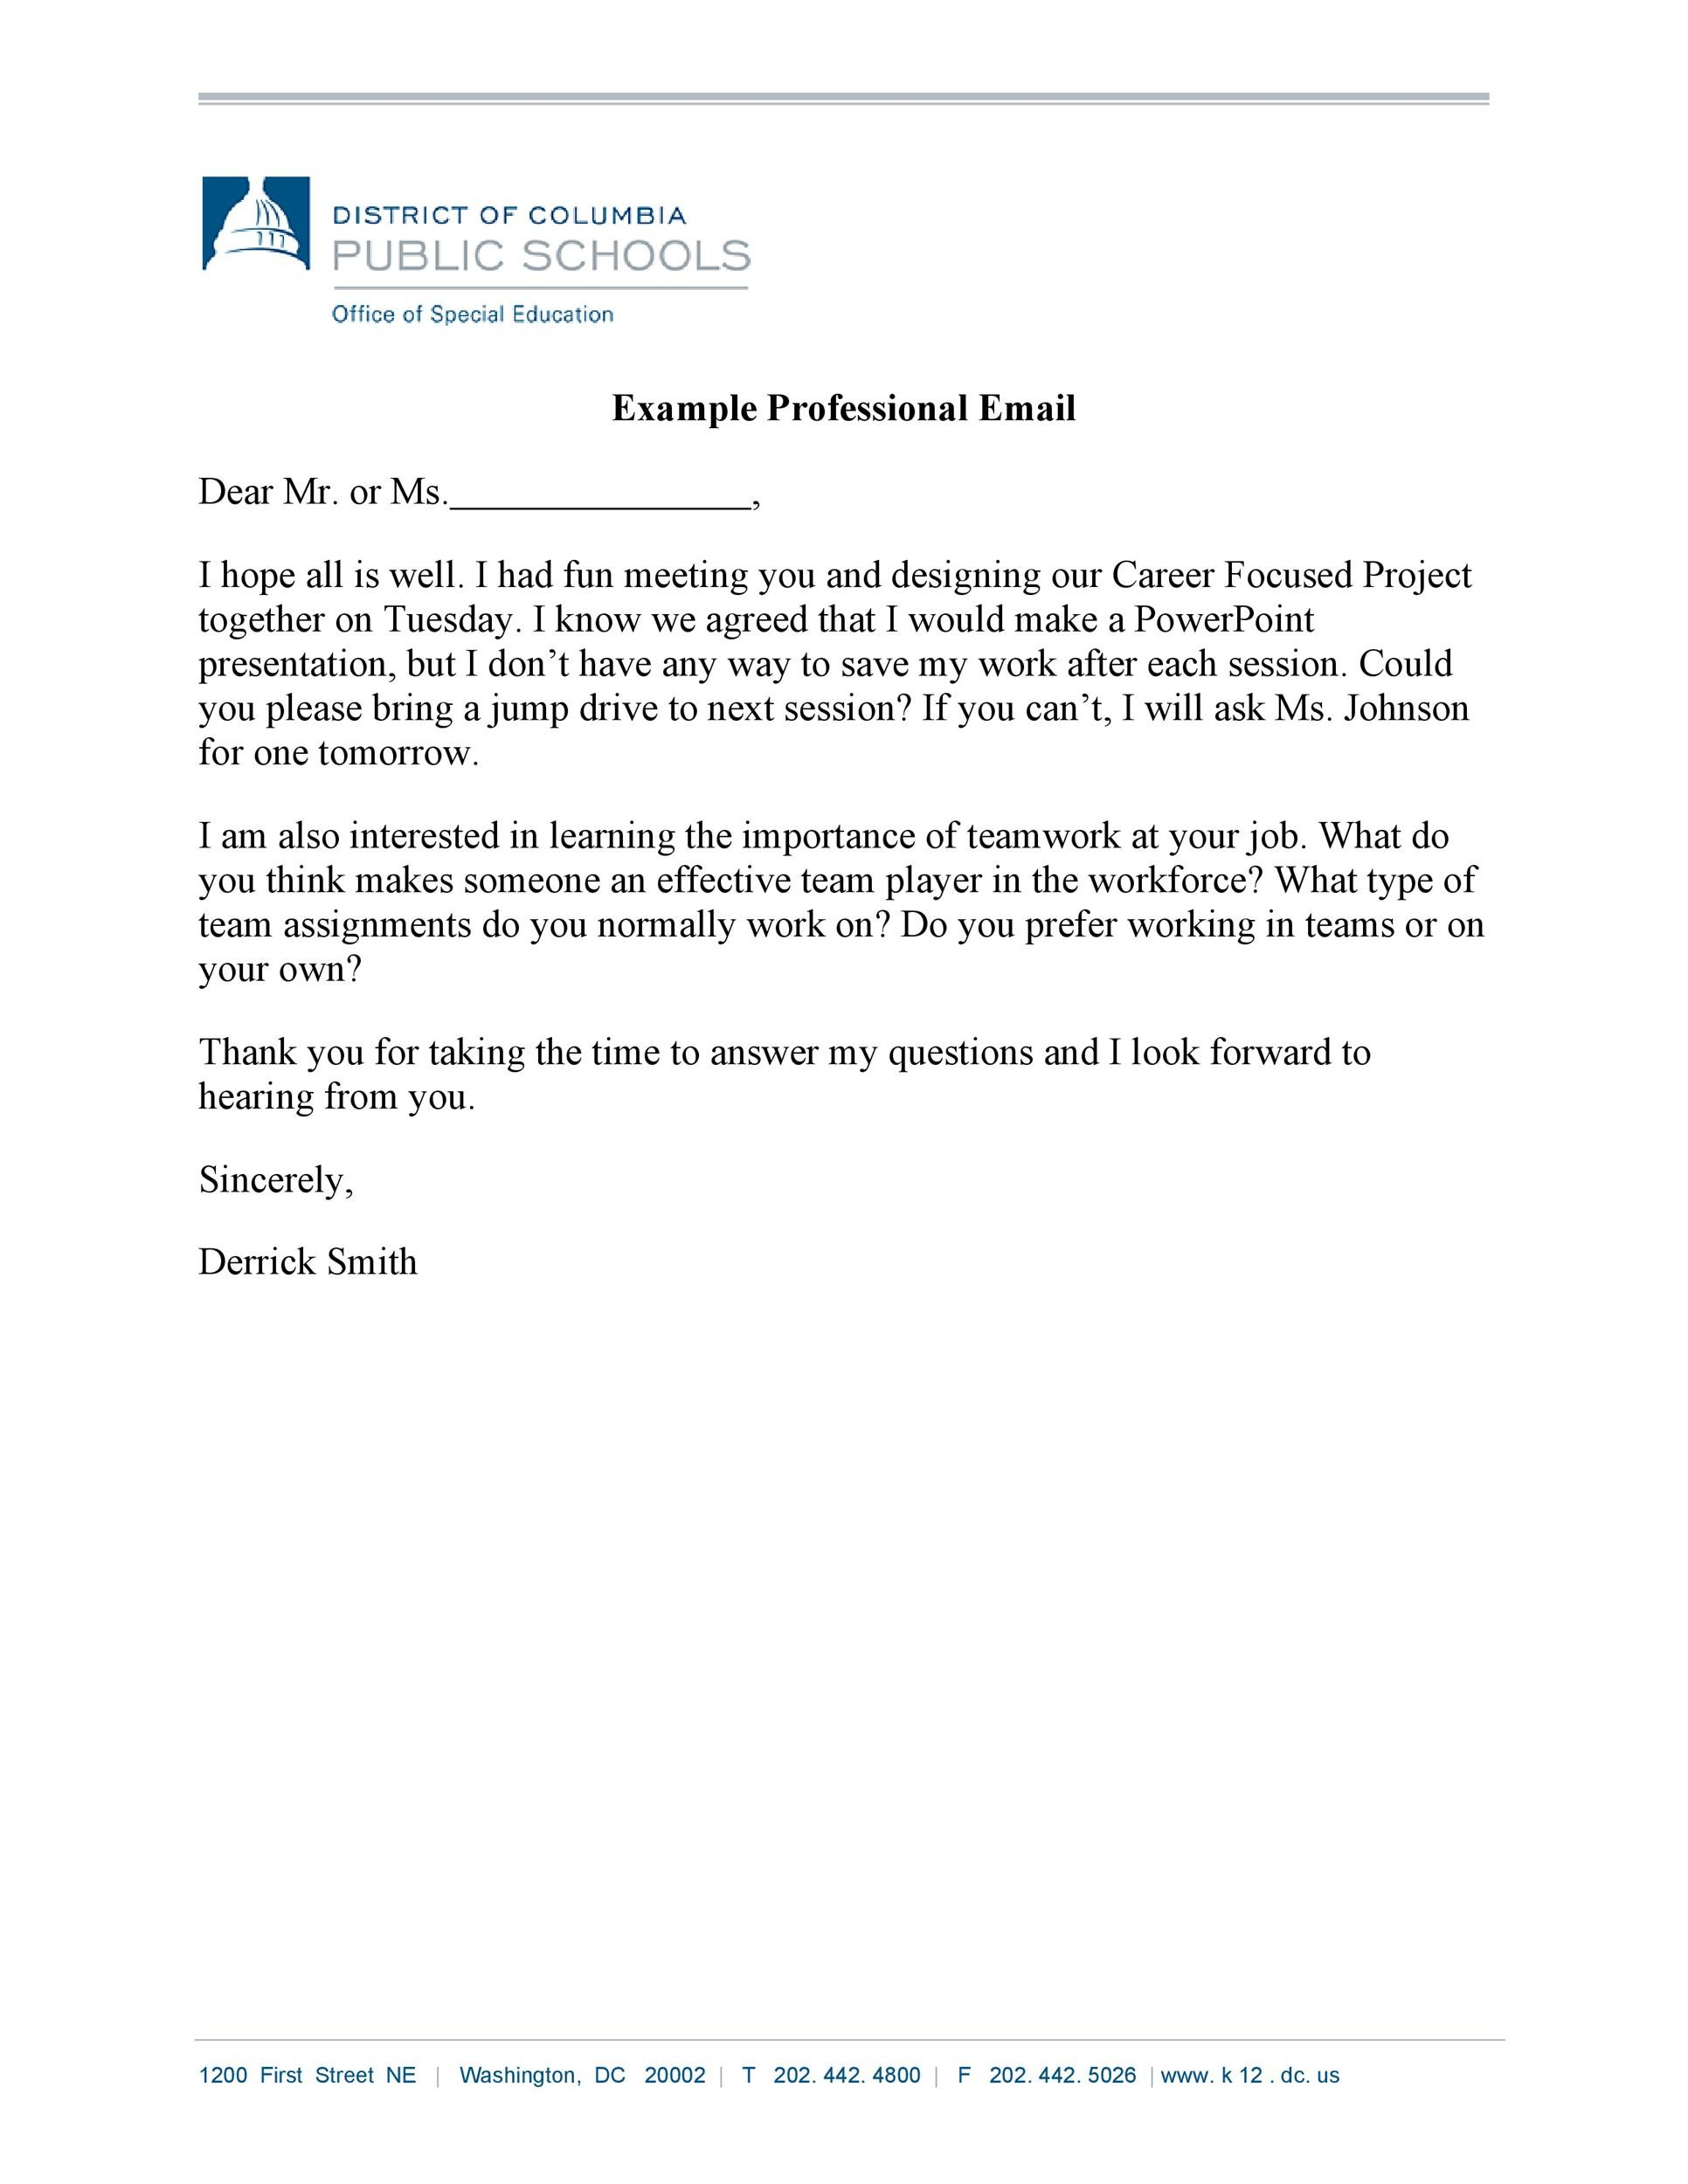 Free professional email example 05